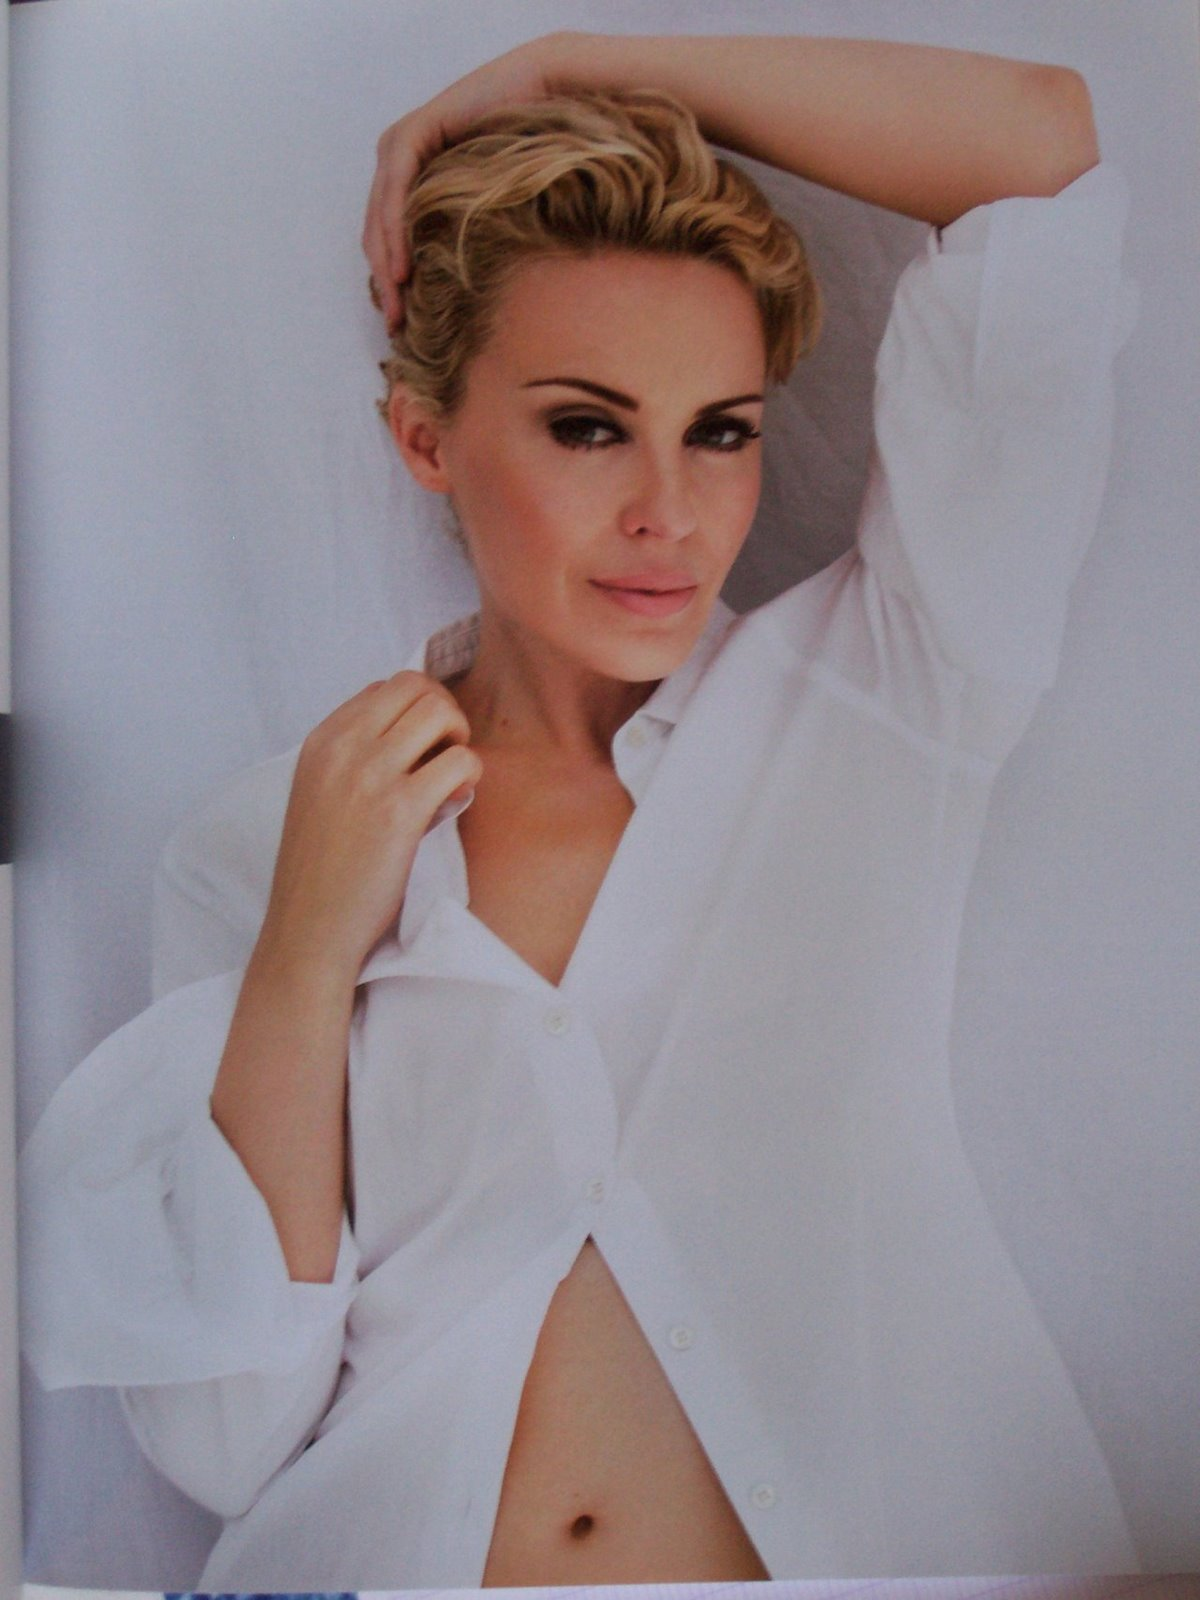 Kylie Minogue S Dirty Dance With Sharon Stone: Ladies In Satin Blouses: Kylie Minogue